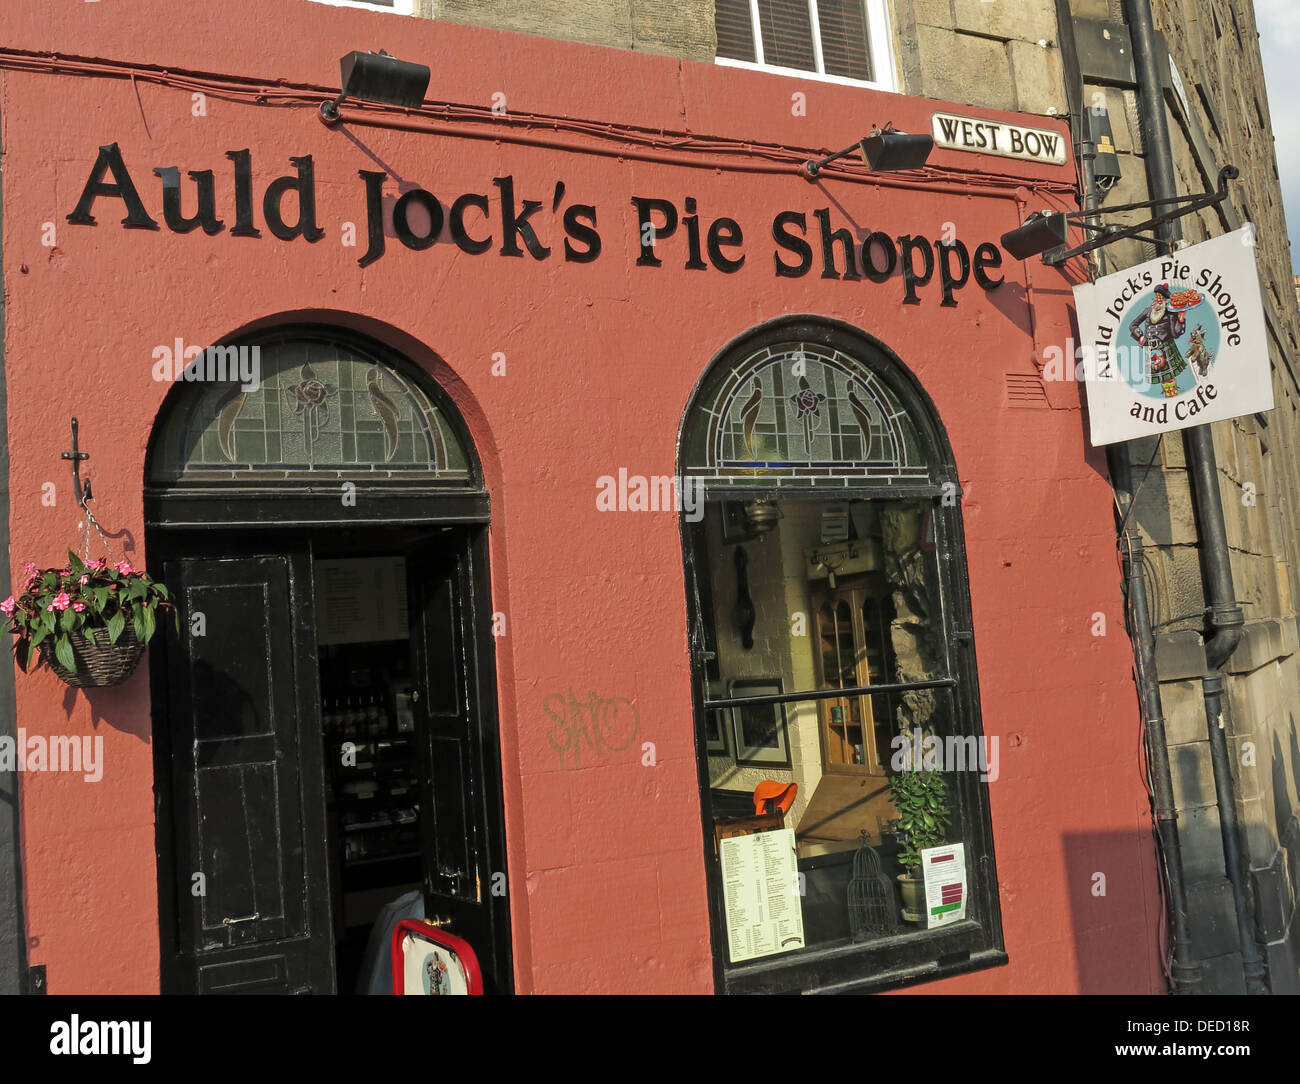 Auld Jocks Pie shoppe, West Bow, Top of Grassmarket, Edinburgh, Scotland, UK - Stock Image